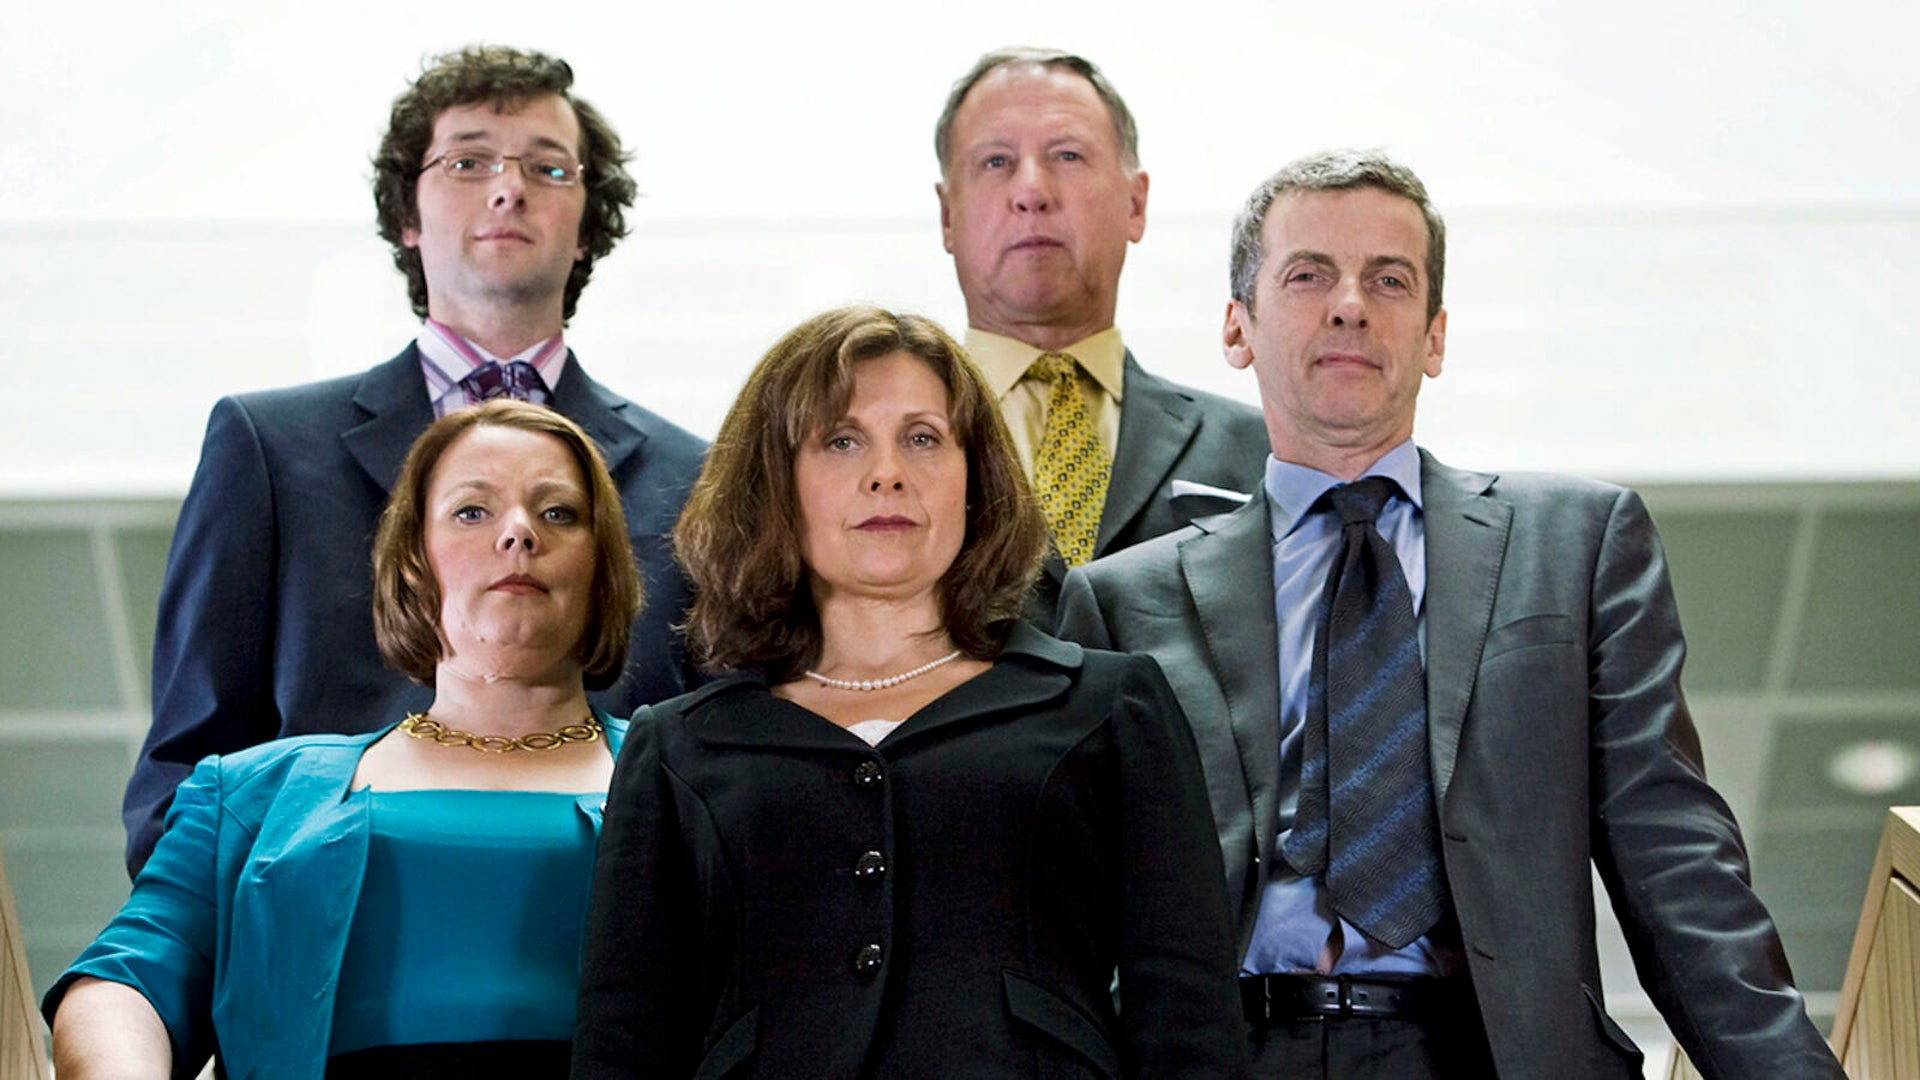 Chris Addison, James Smith, Joanna Scanlan, Rebecca Front, and Peter Capaldi, The Thick of It